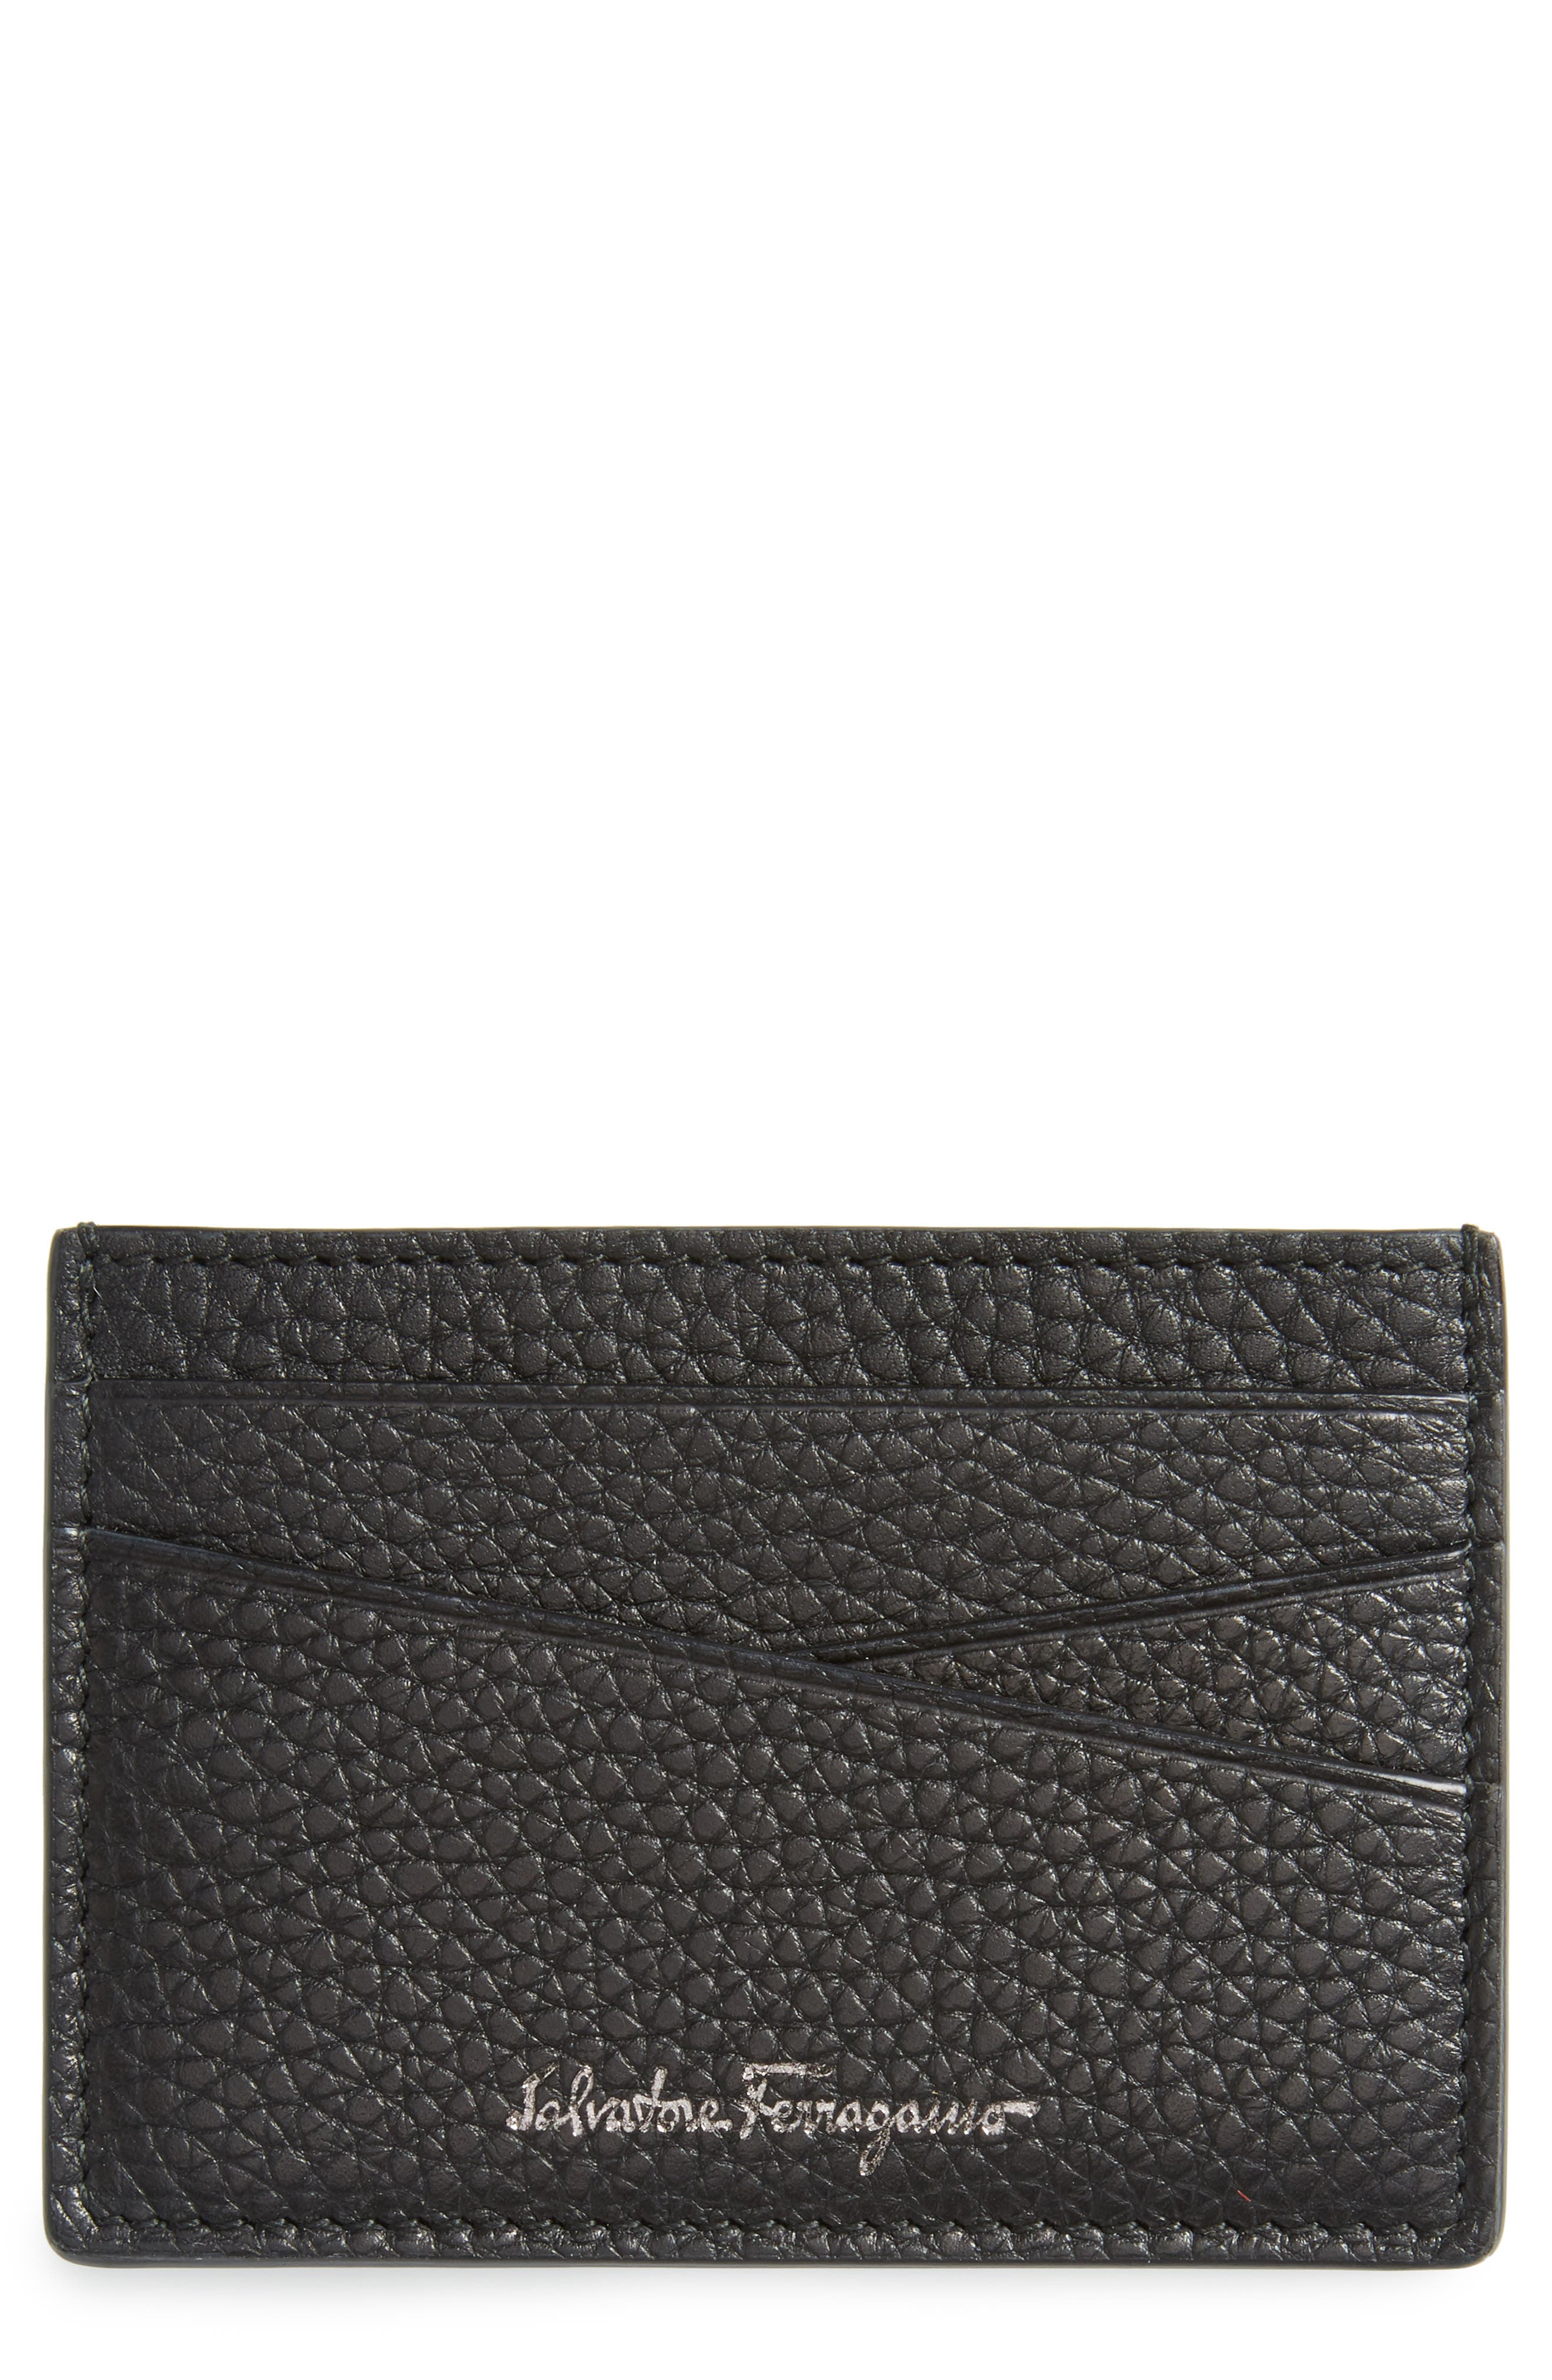 Firenze Leather Card Case,                         Main,                         color, Black